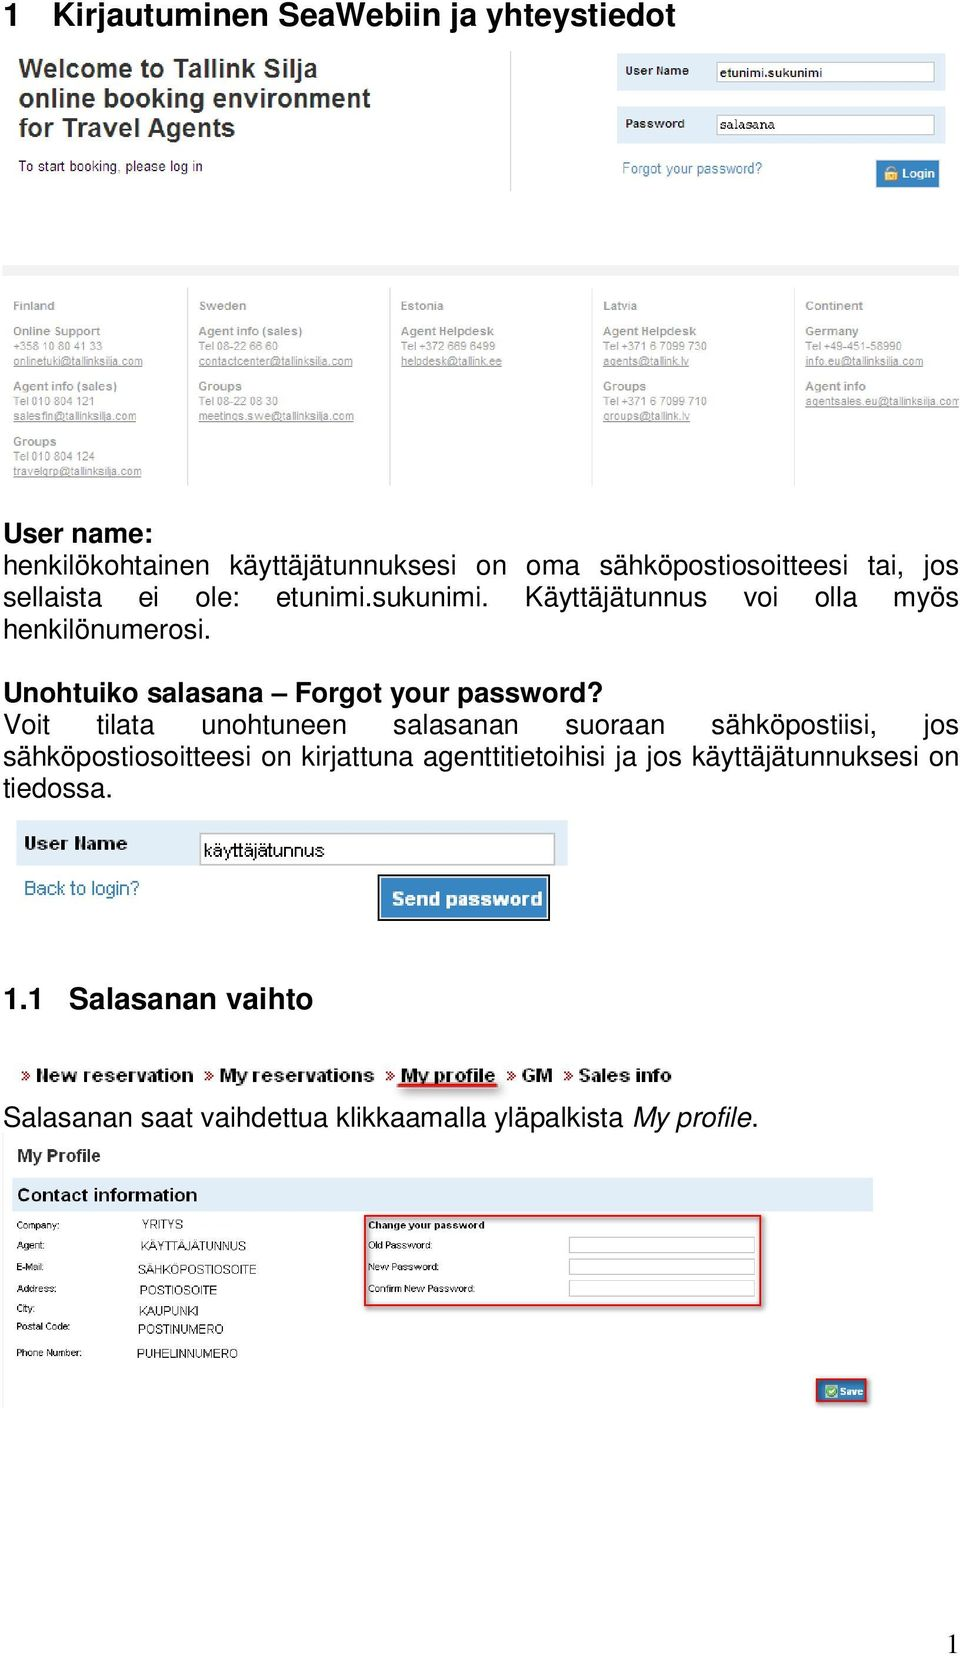 Unohtuiko salasana Forgot your password?